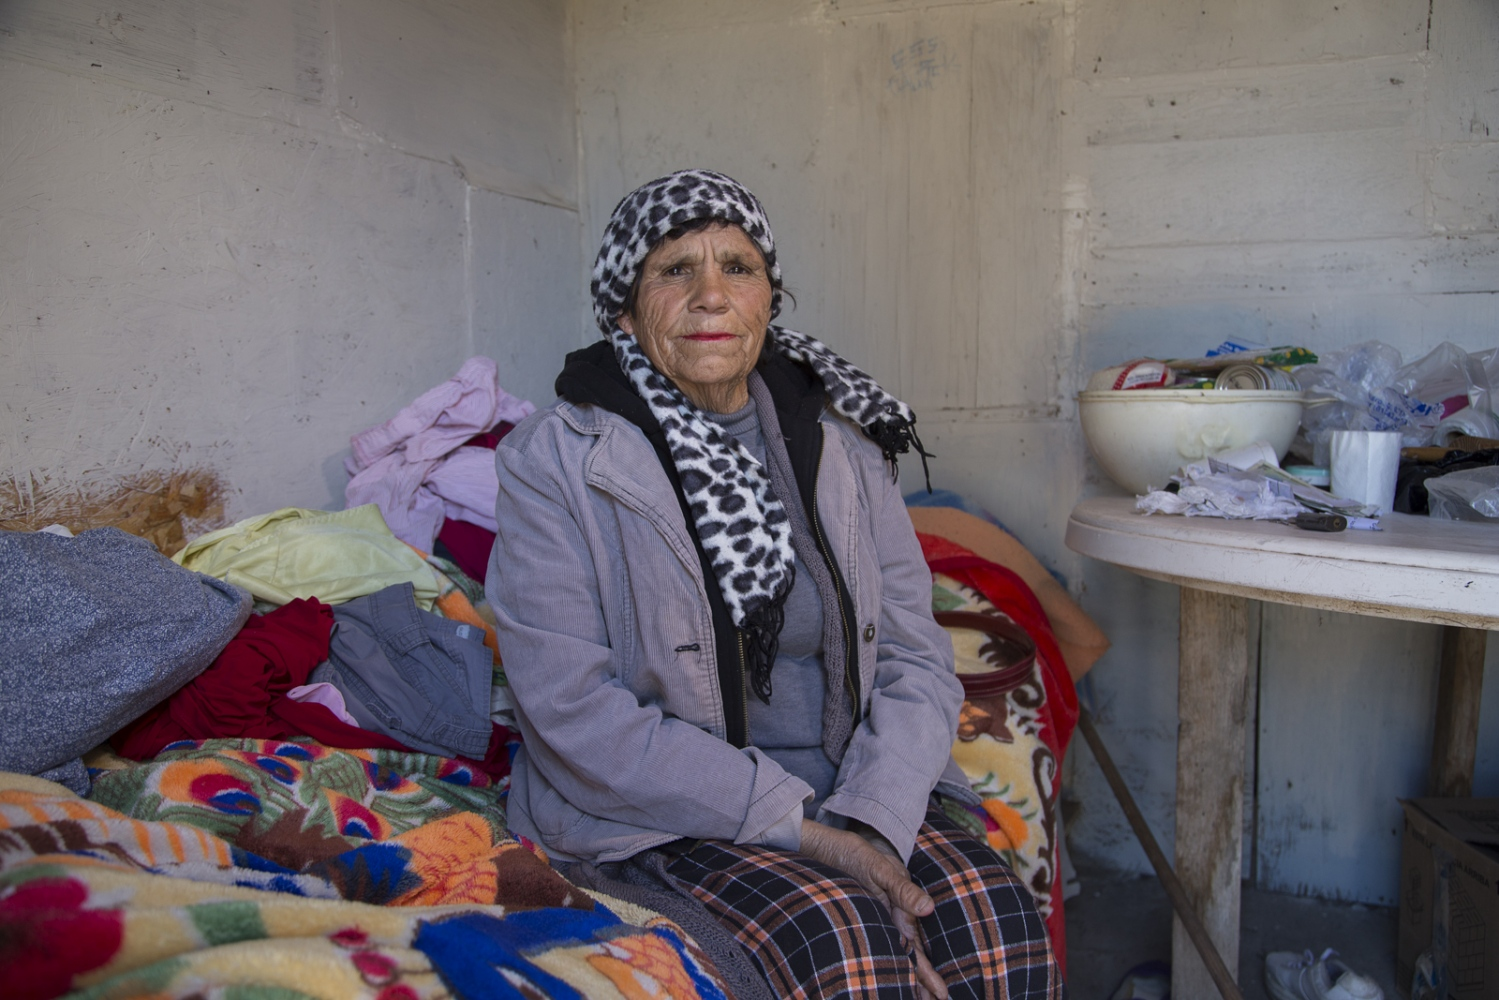 muslim singles in san martin The muslim community of south county is following in  a quiet sunday drive in san martin would reveal many single-family homes that are  san martin wells .